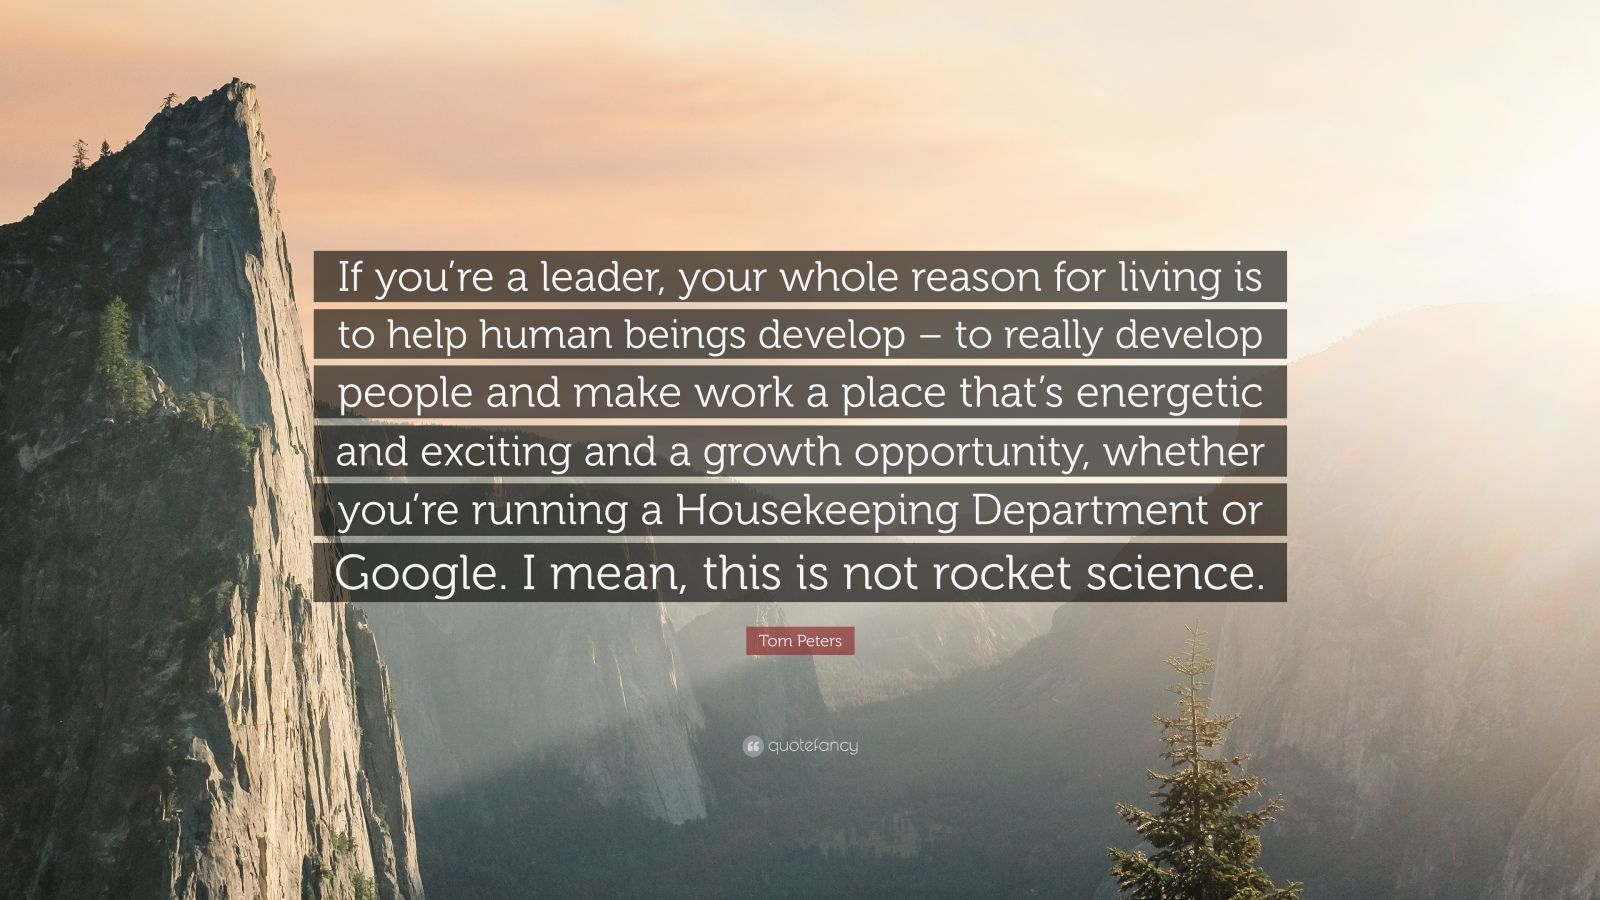 """Tom Peters Quote: """"If you're a leader, your whole reason for living is to help human beings develop – to really develop people and make work a place that's energetic and exciting and a growth opportunity, whether you're running a Housekeeping Department or Google. I mean, this is not rocket science."""""""